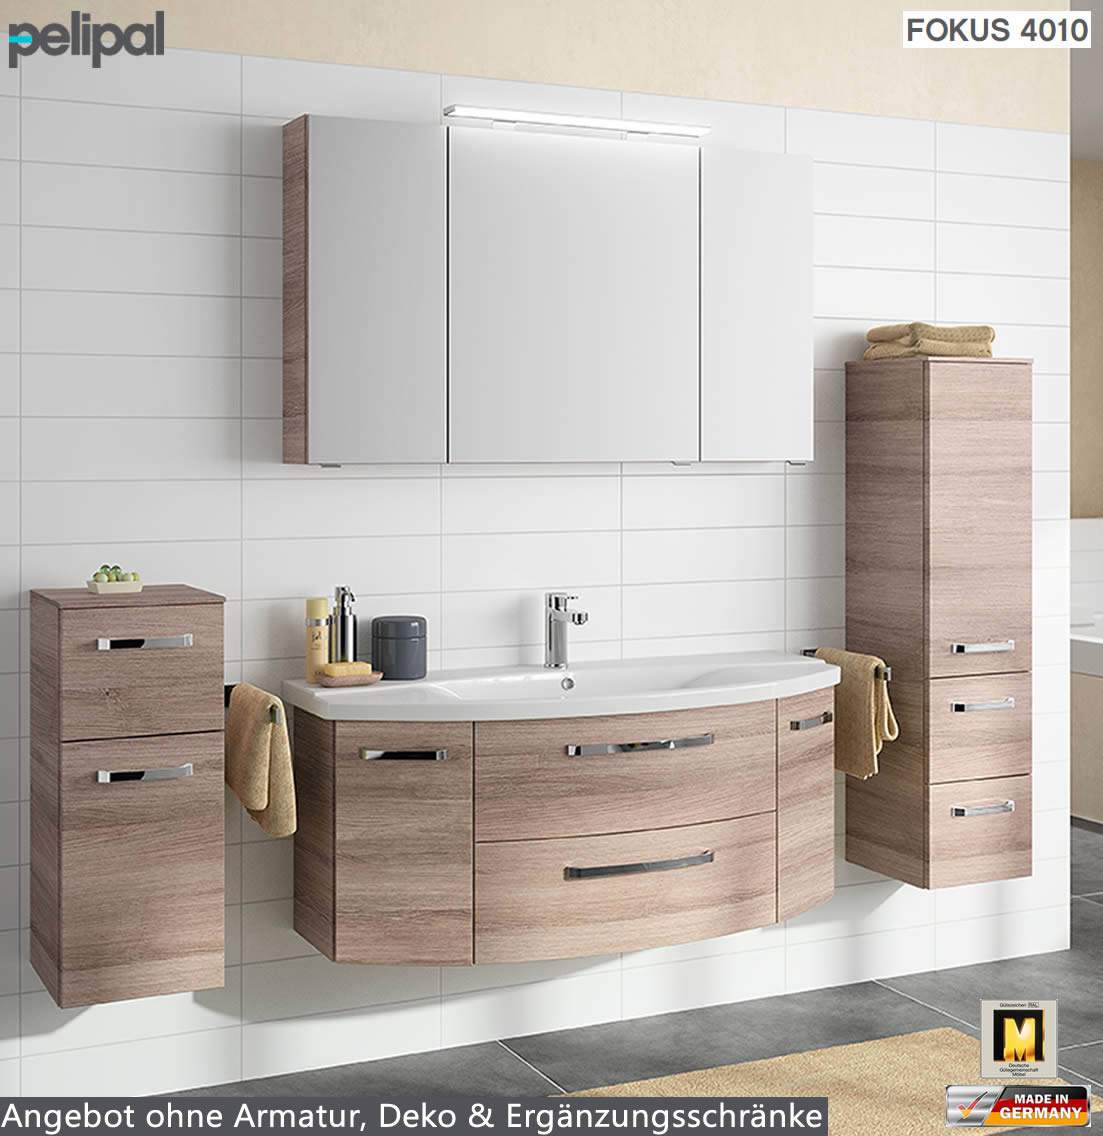 badm bel von pelipal reuniecollegenoetsele. Black Bedroom Furniture Sets. Home Design Ideas